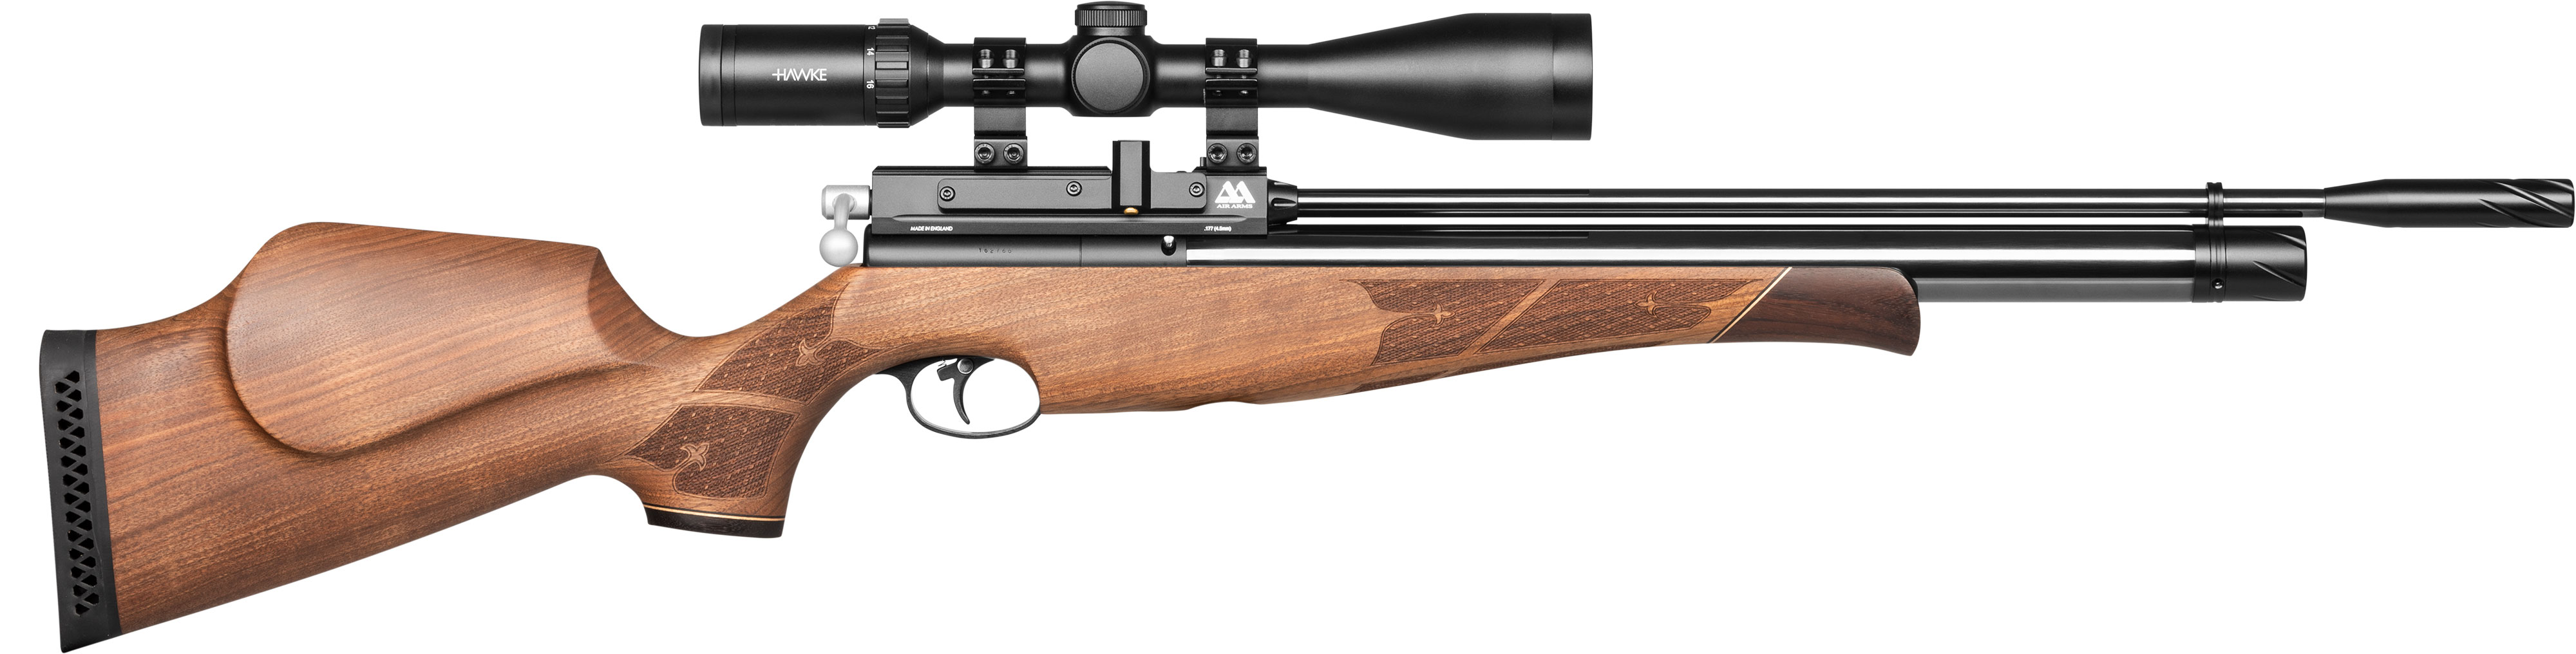 S410 Rifle Walnut Left Hand